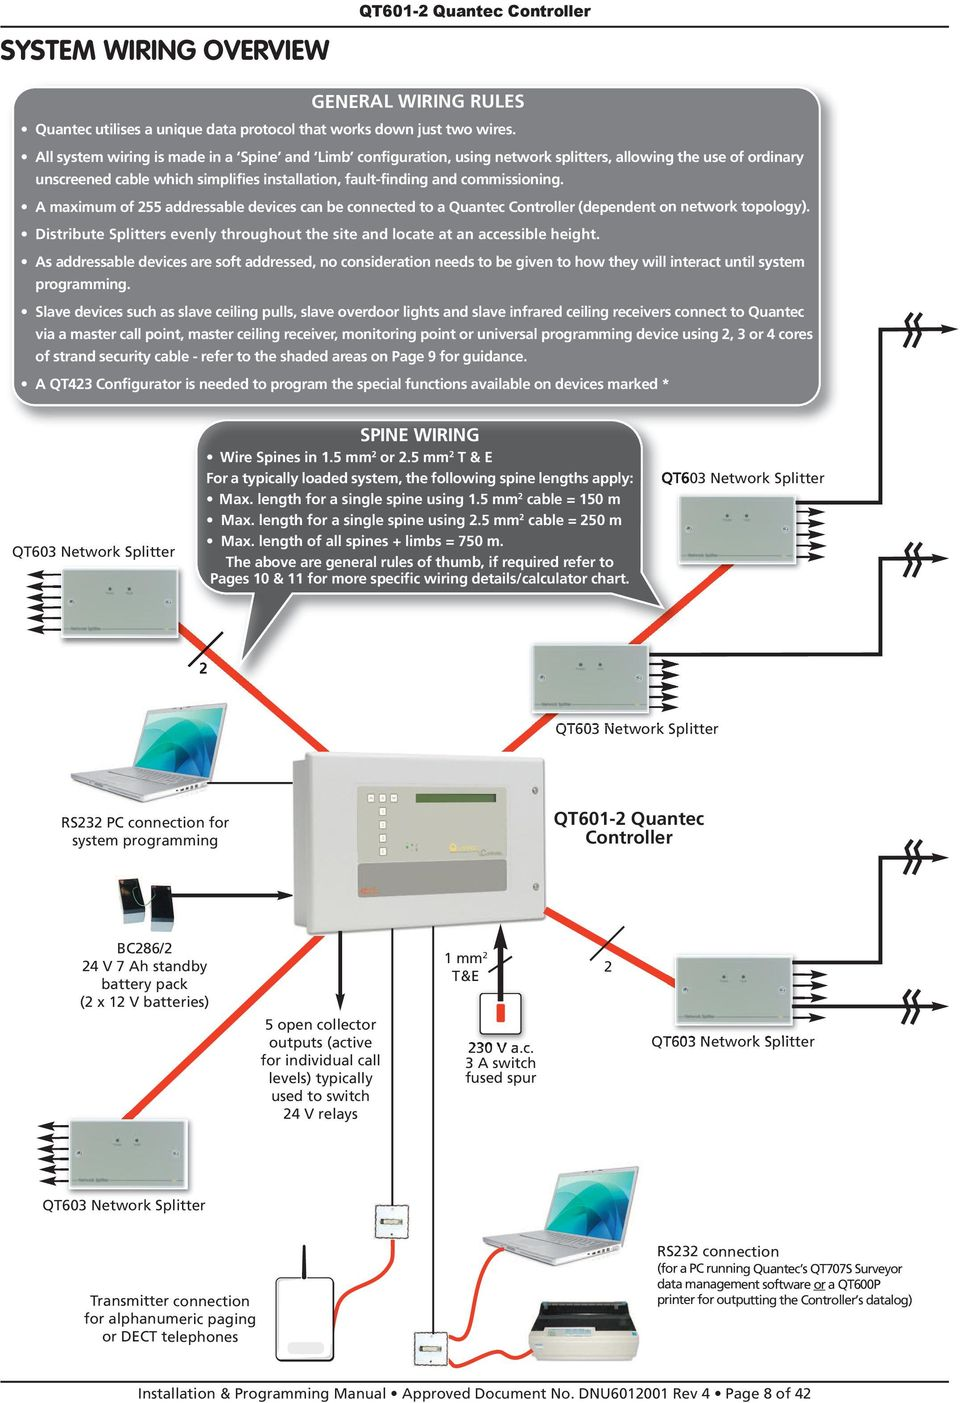 QT601-2 QUANTEC CONTROLLER. installation and programming manual Approved  Document No. DNU Rev 4 - PDF Free Download   Addressable Nurse Call Wiring Diagram      DocPlayer.net